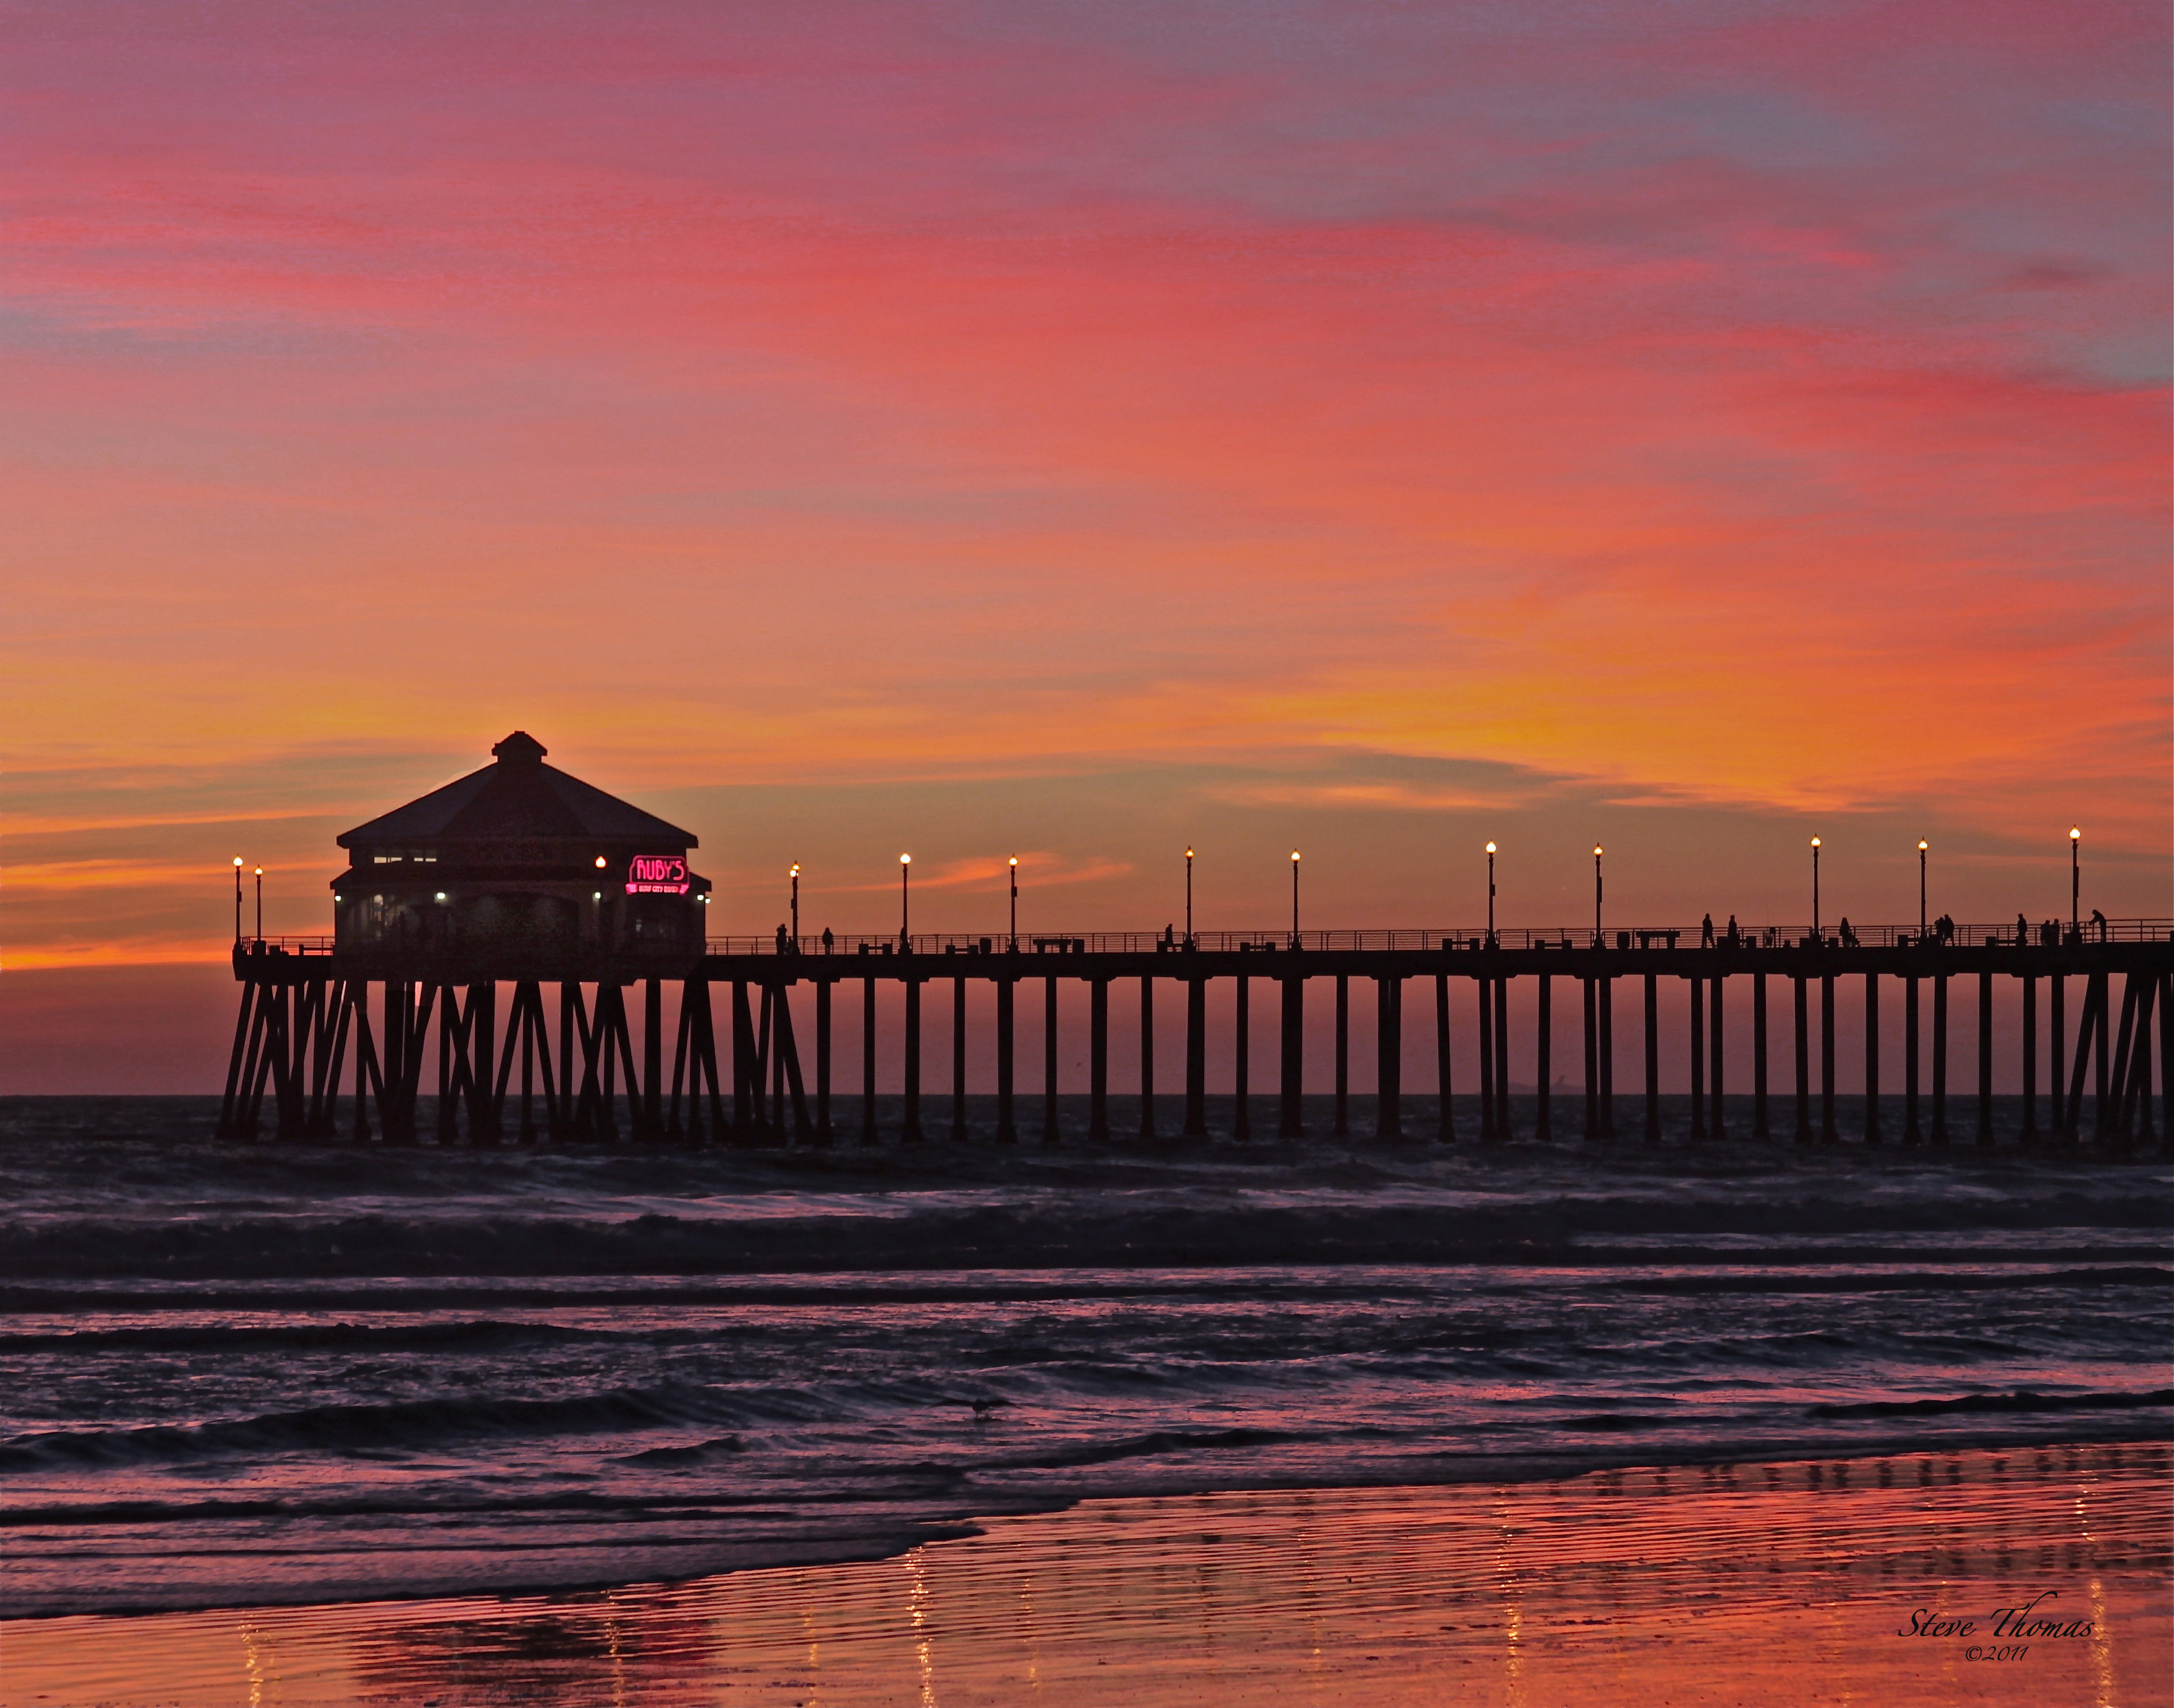 JUST ANOTHER HUNTINGTON BEACH SUNSET